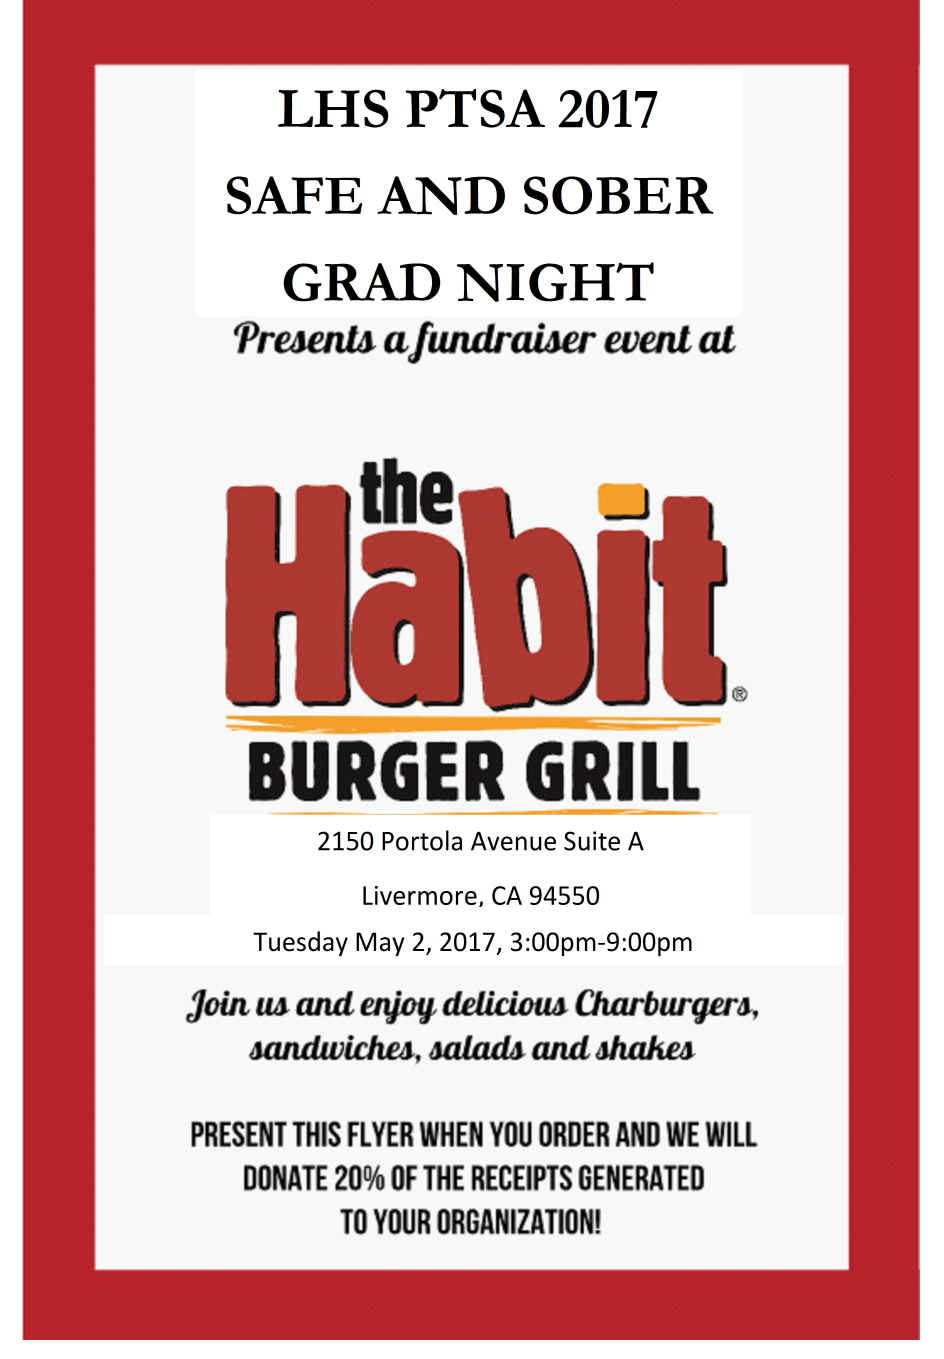 Safe and Sober Grad Night Dine Out ~ the Habit @ the Habit | Livermore | California | United States